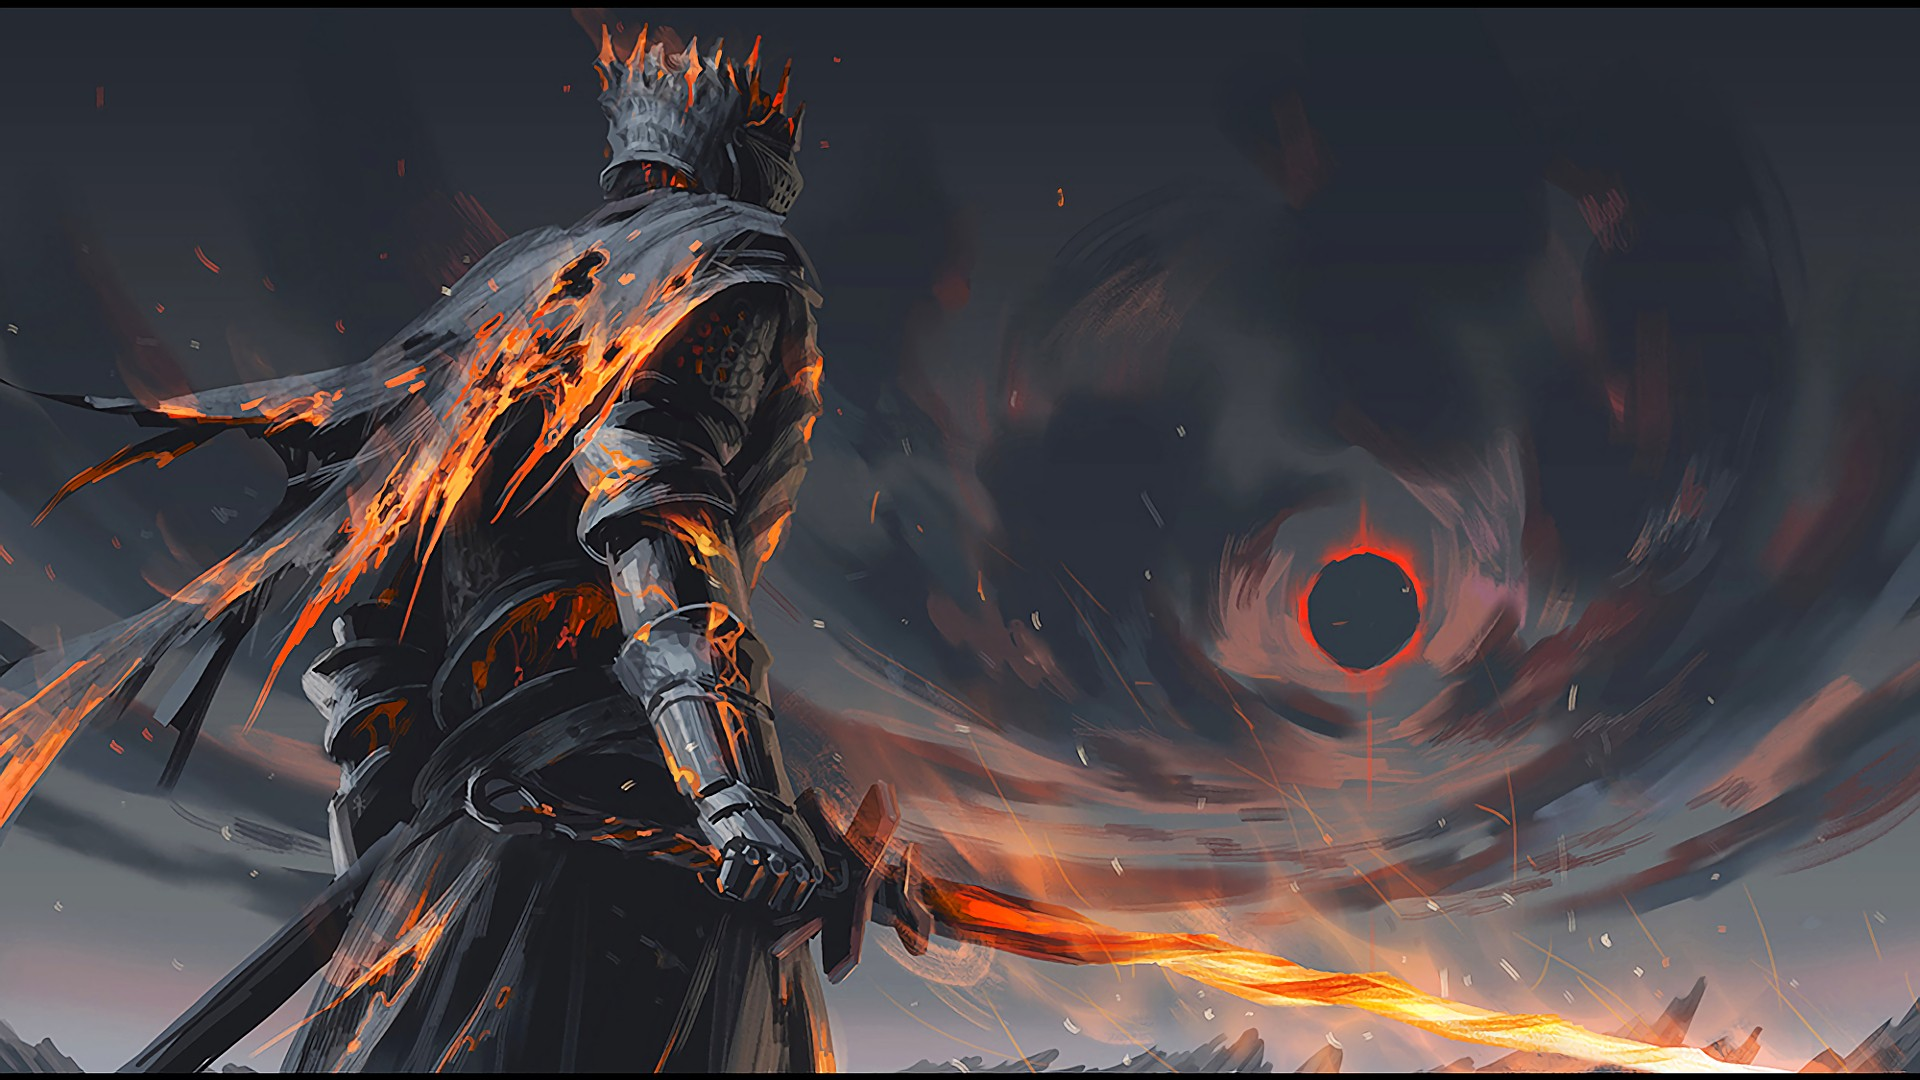 Dark Souls Wallpaper ·① Download Free Awesome HD